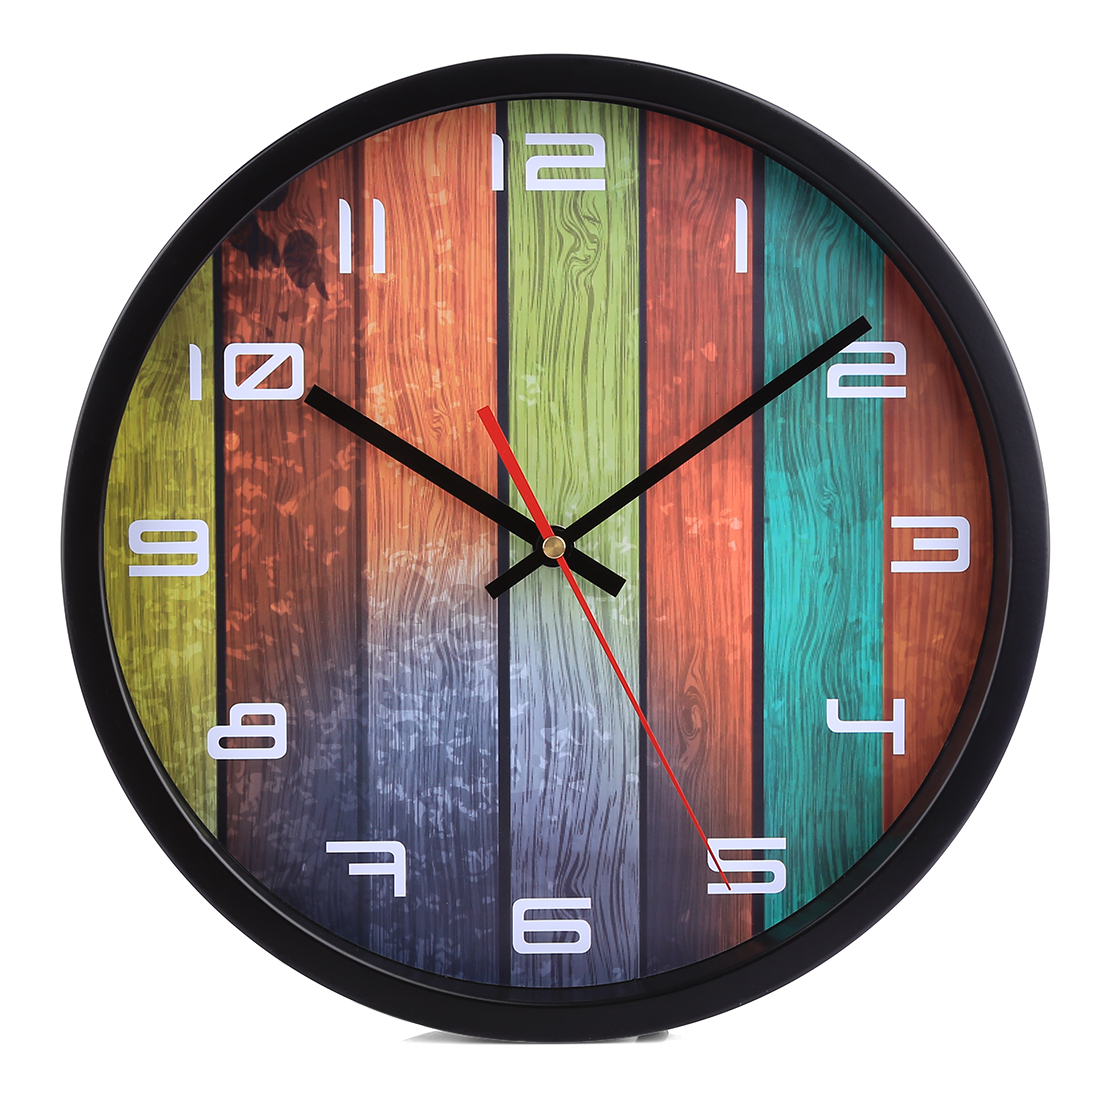 New Metal Creative Colorful Strip Pattern Mute Round Wall Clock Slient Circular Simple Hanging Clock Decor Home - Black Frame